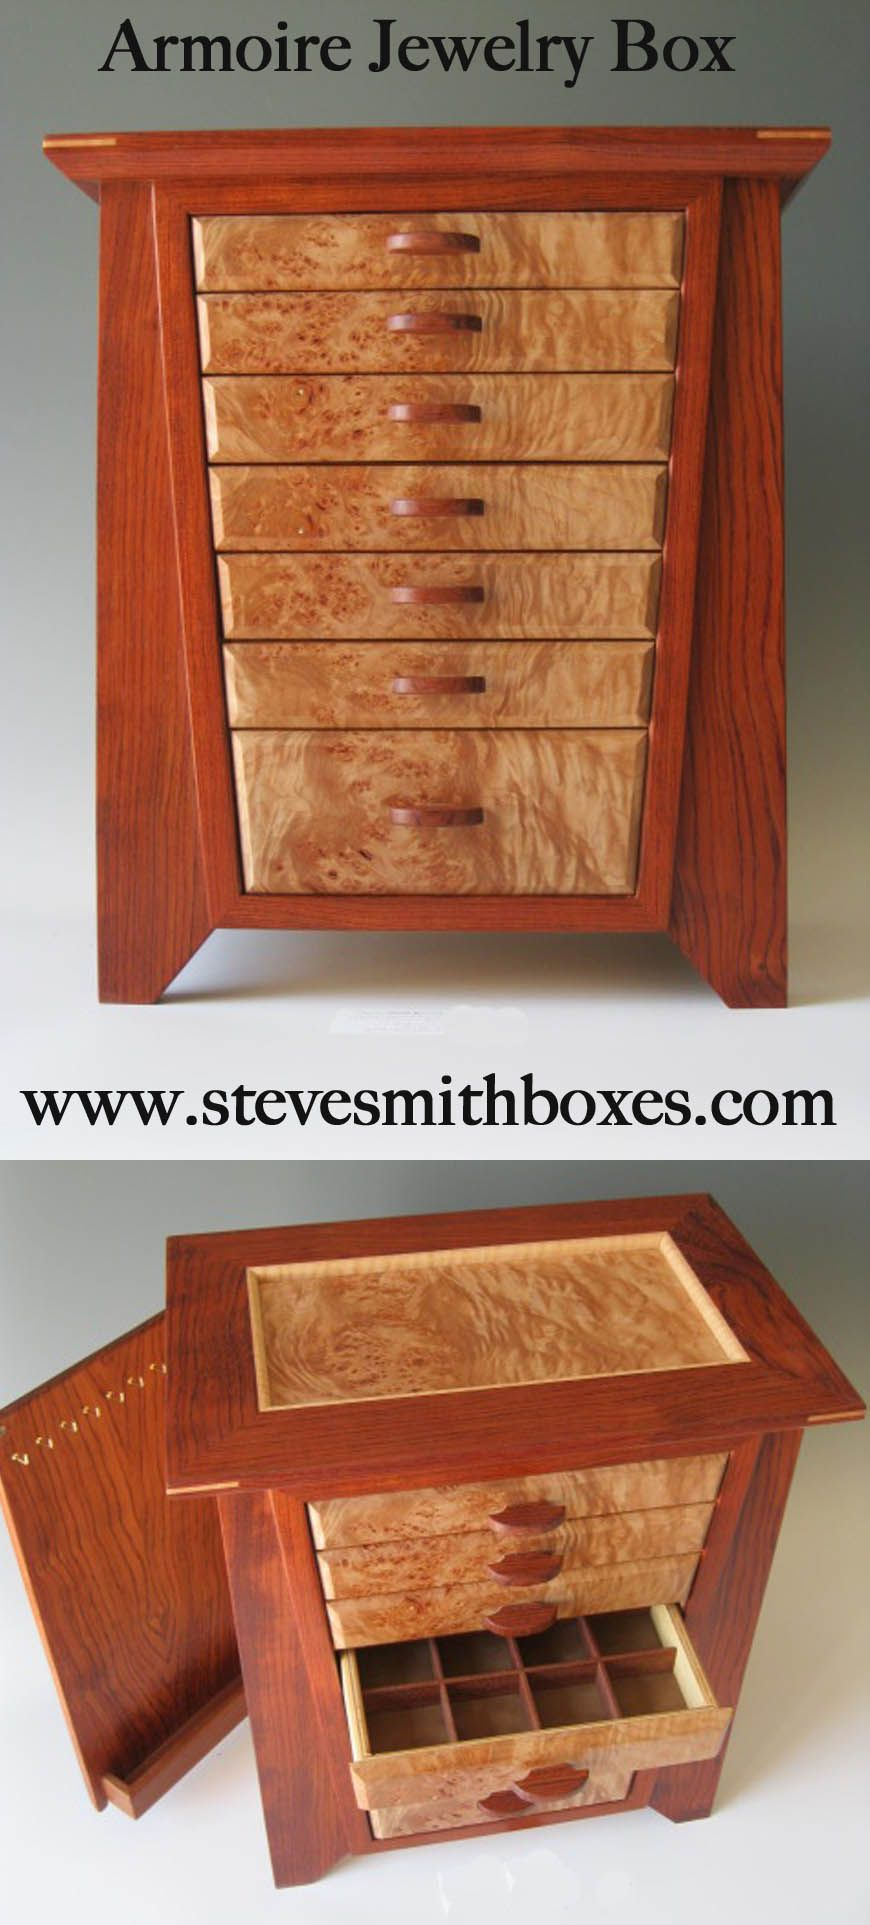 Armoire Jewelry Boxes Handcrafted of Exotic Woods Steve Smith